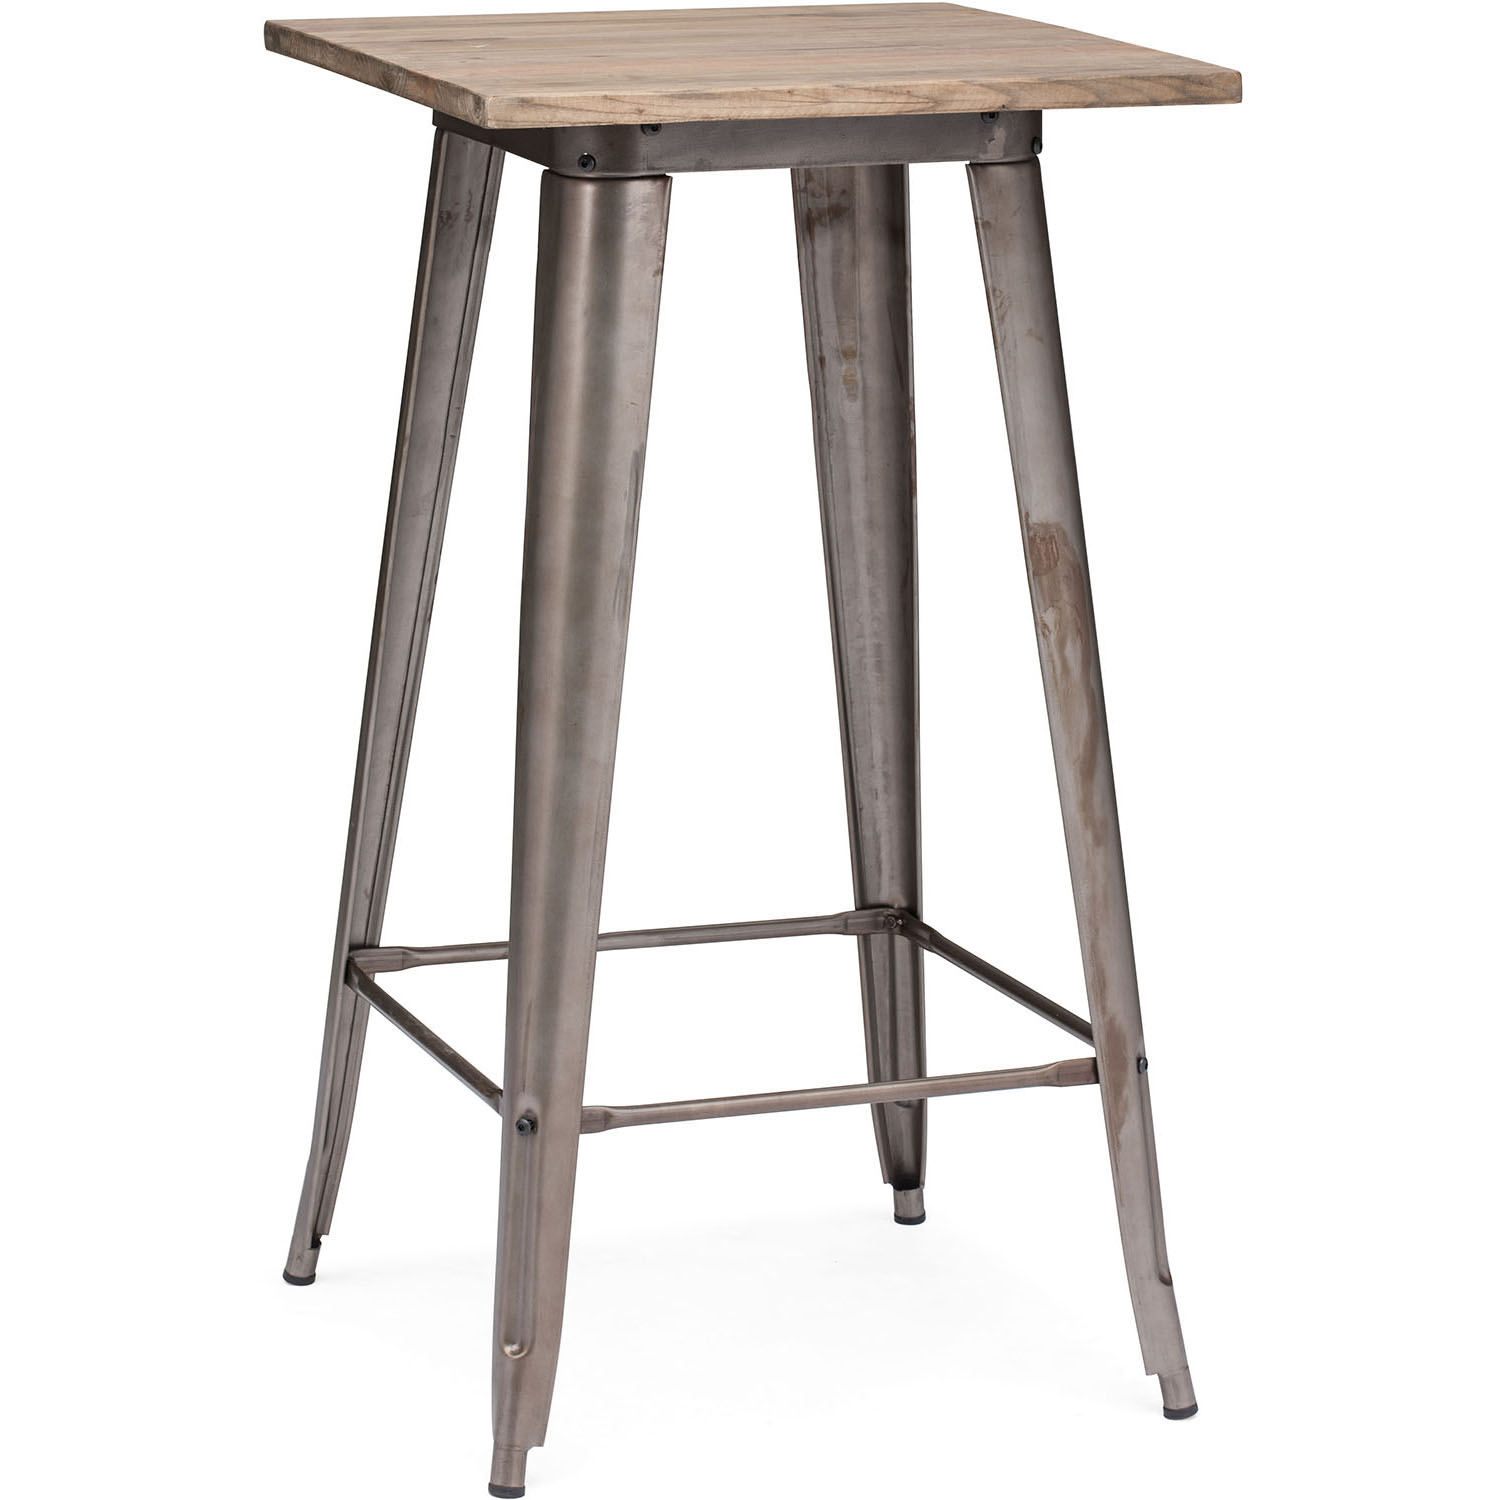 New Era Titus Bar Table Rustic Wood Product Photo